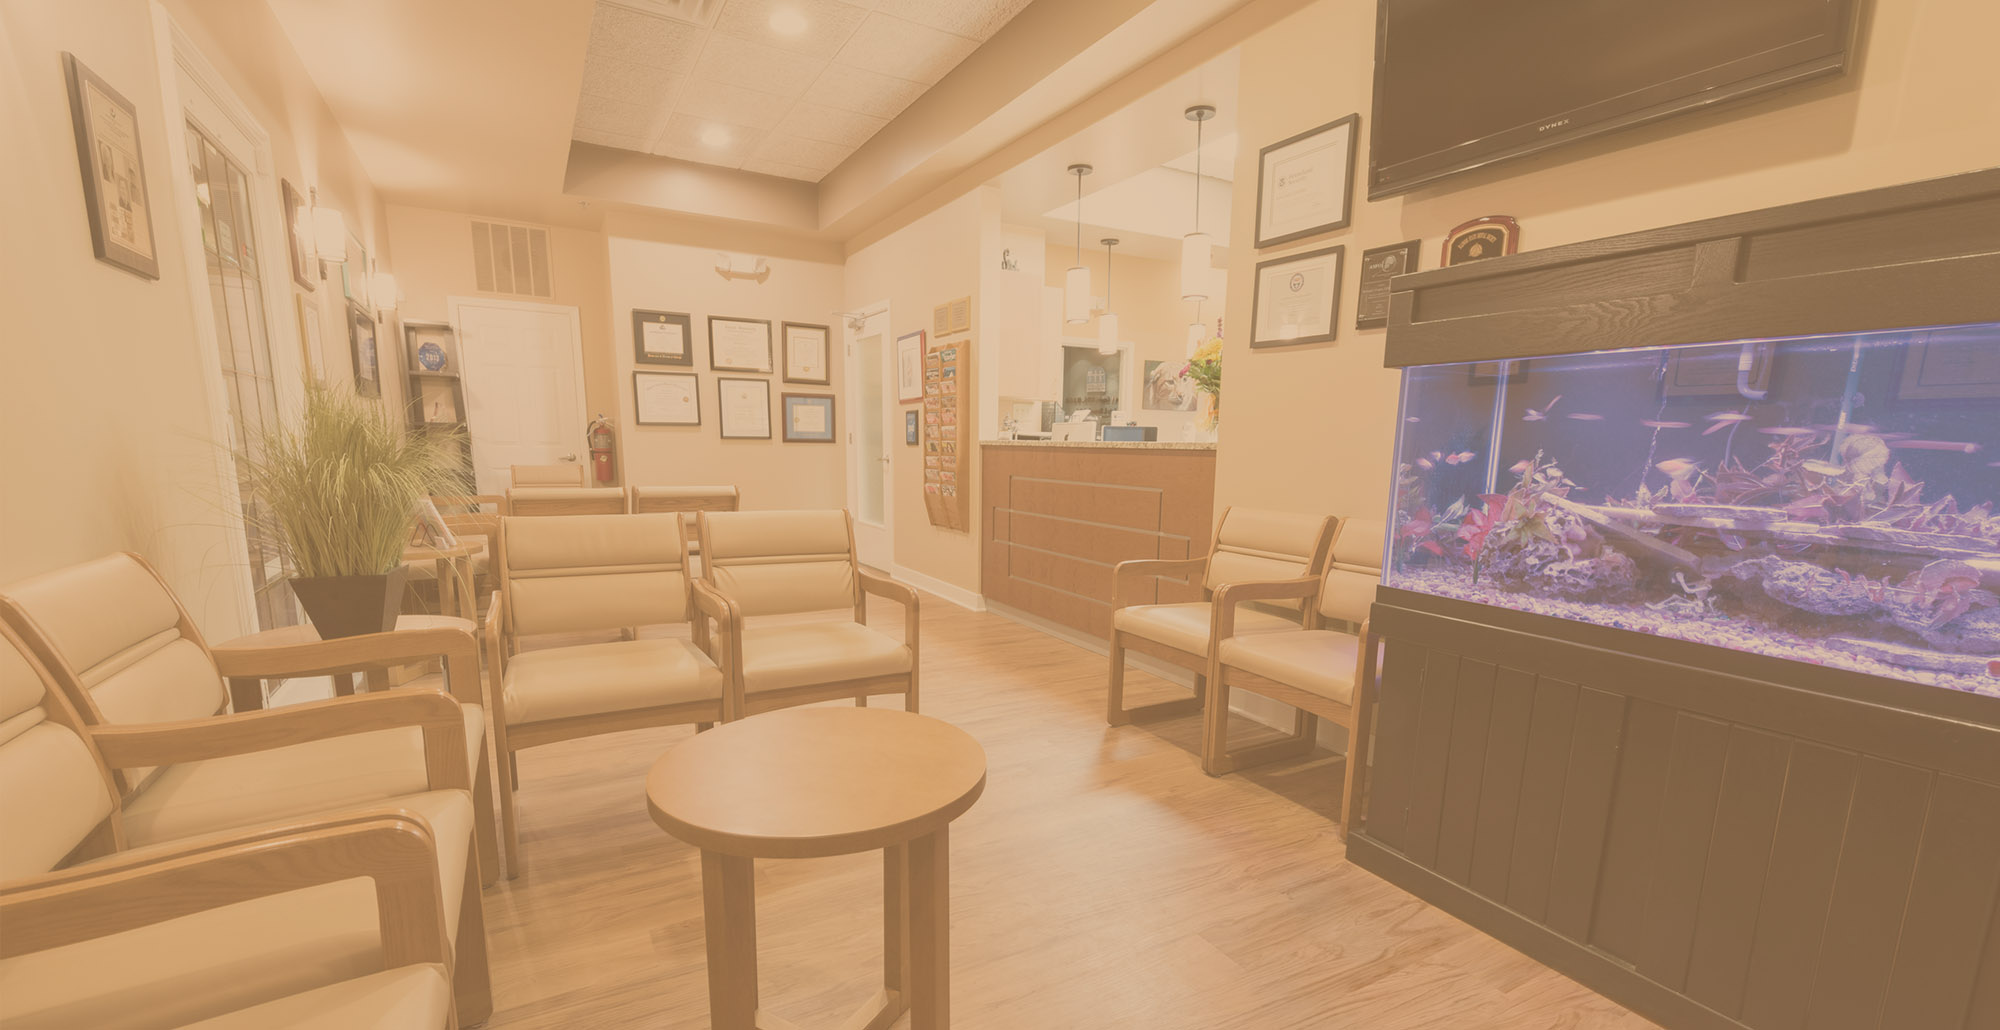 Gurnee Dental Office